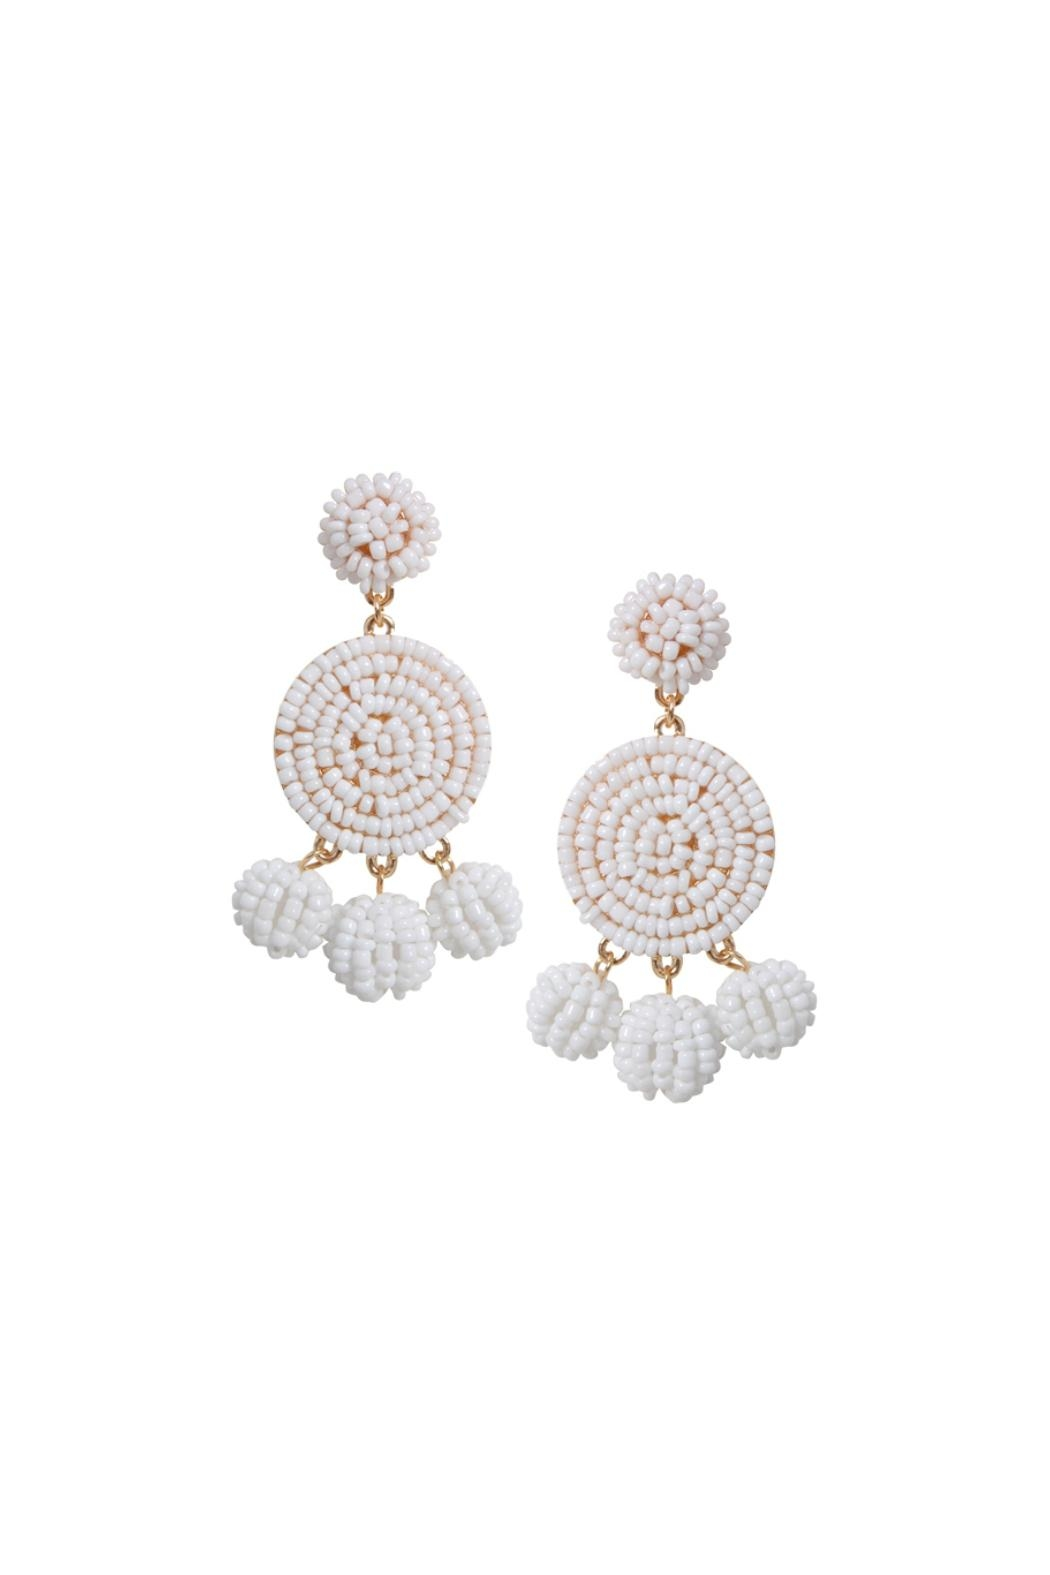 Gemma Collection White Eliano Earrings - Main Image